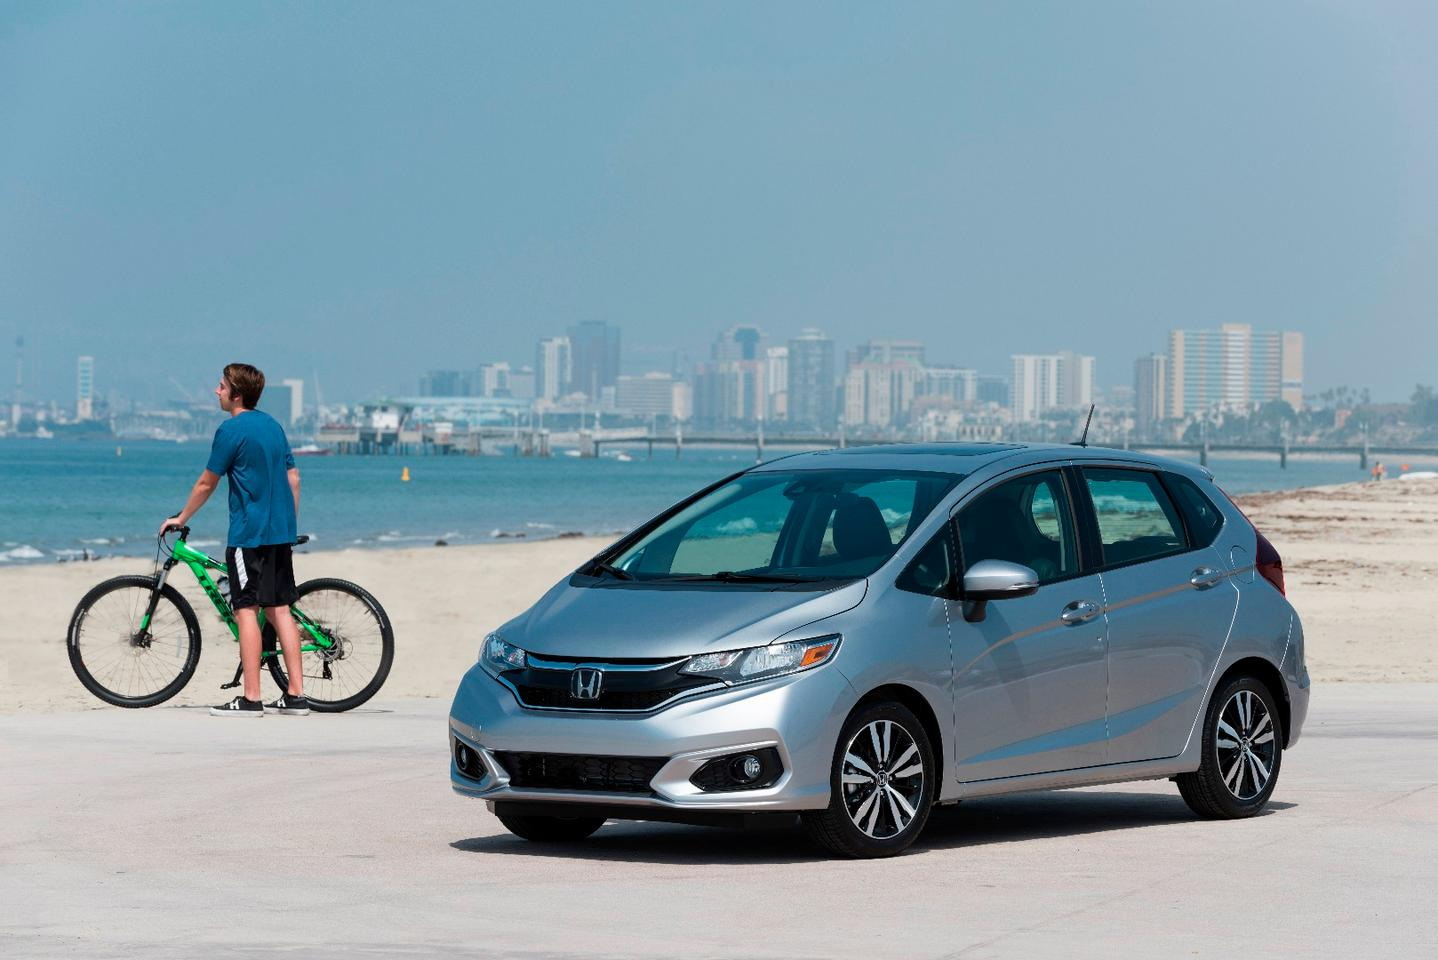 The refreshed Honda Fit looks remarkably similar to its predecessor